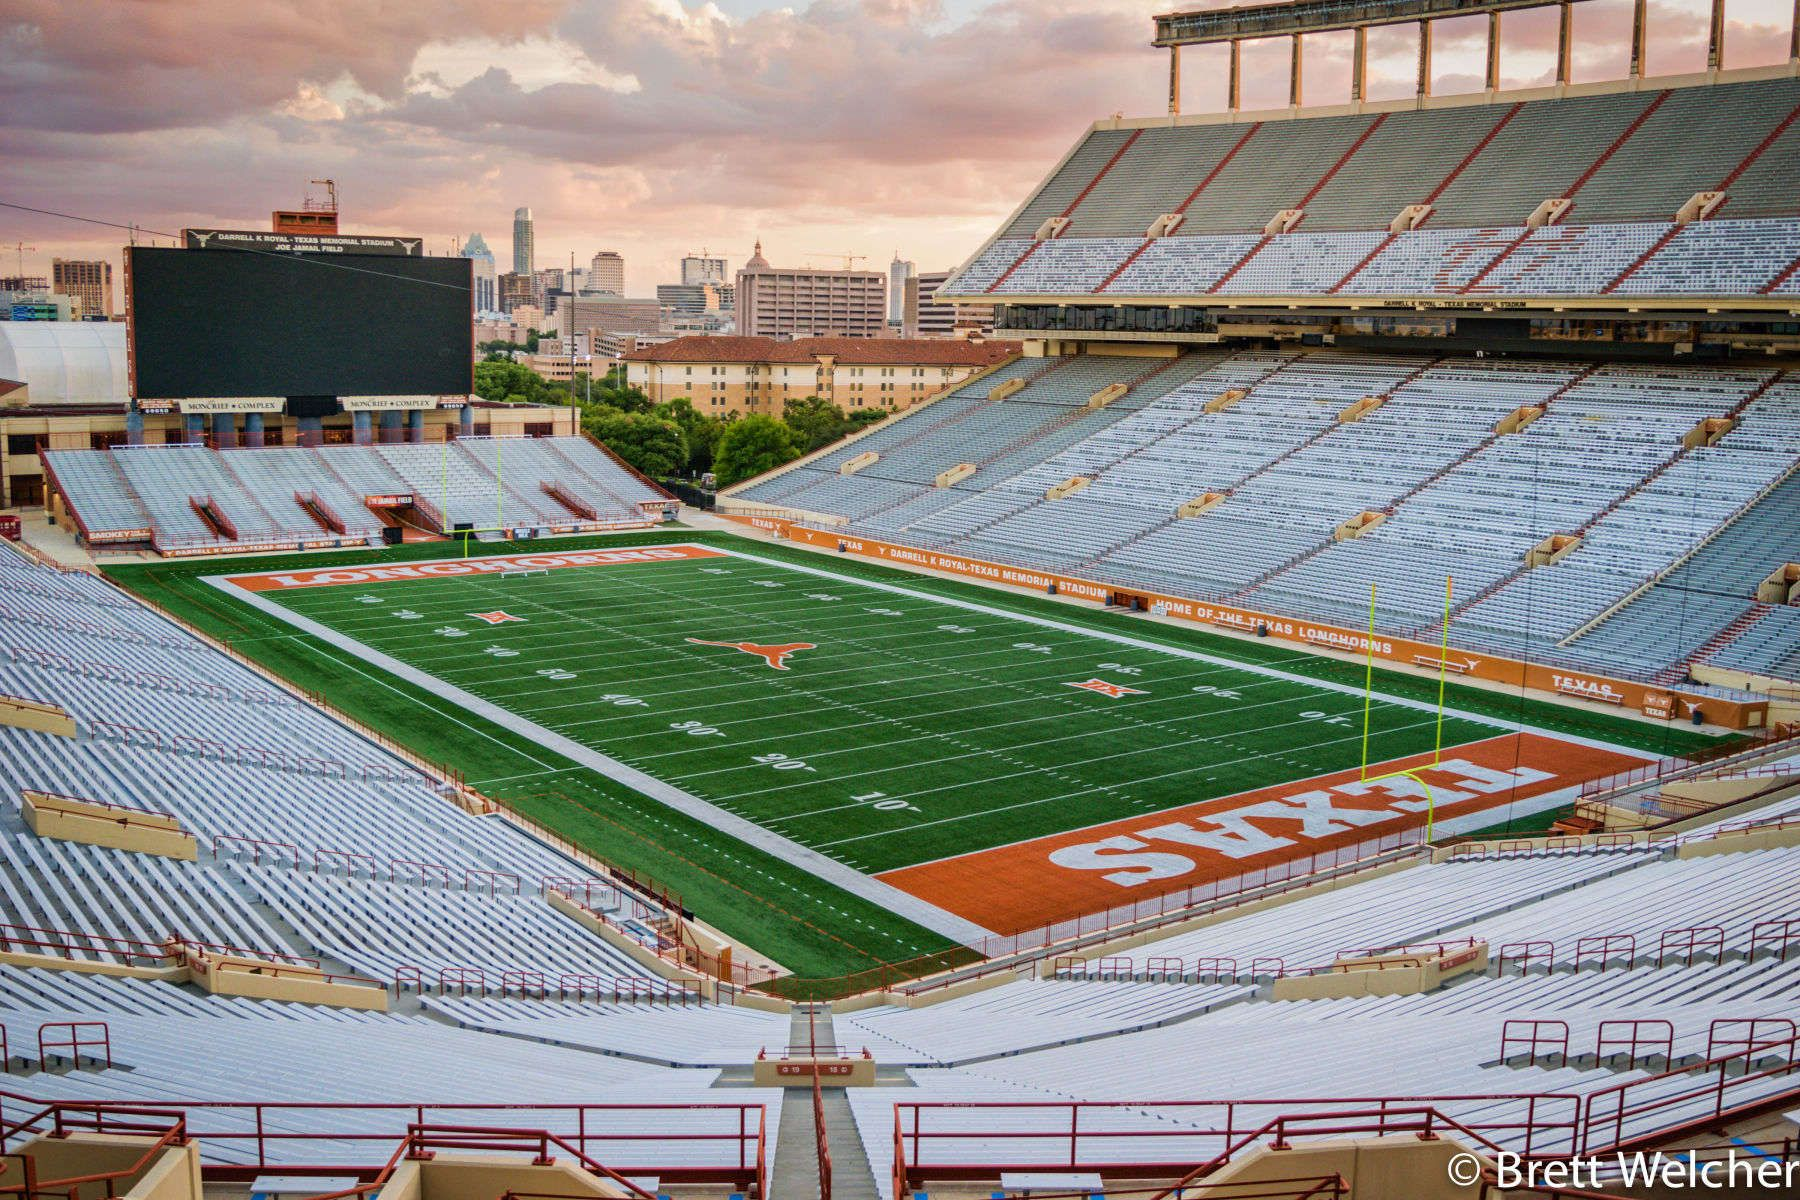 The Darrell K Royal–Texas Memorial Stadium located in Austin, Texas, has been home to the University of Texas at Austin Longhorns football team since 1924.